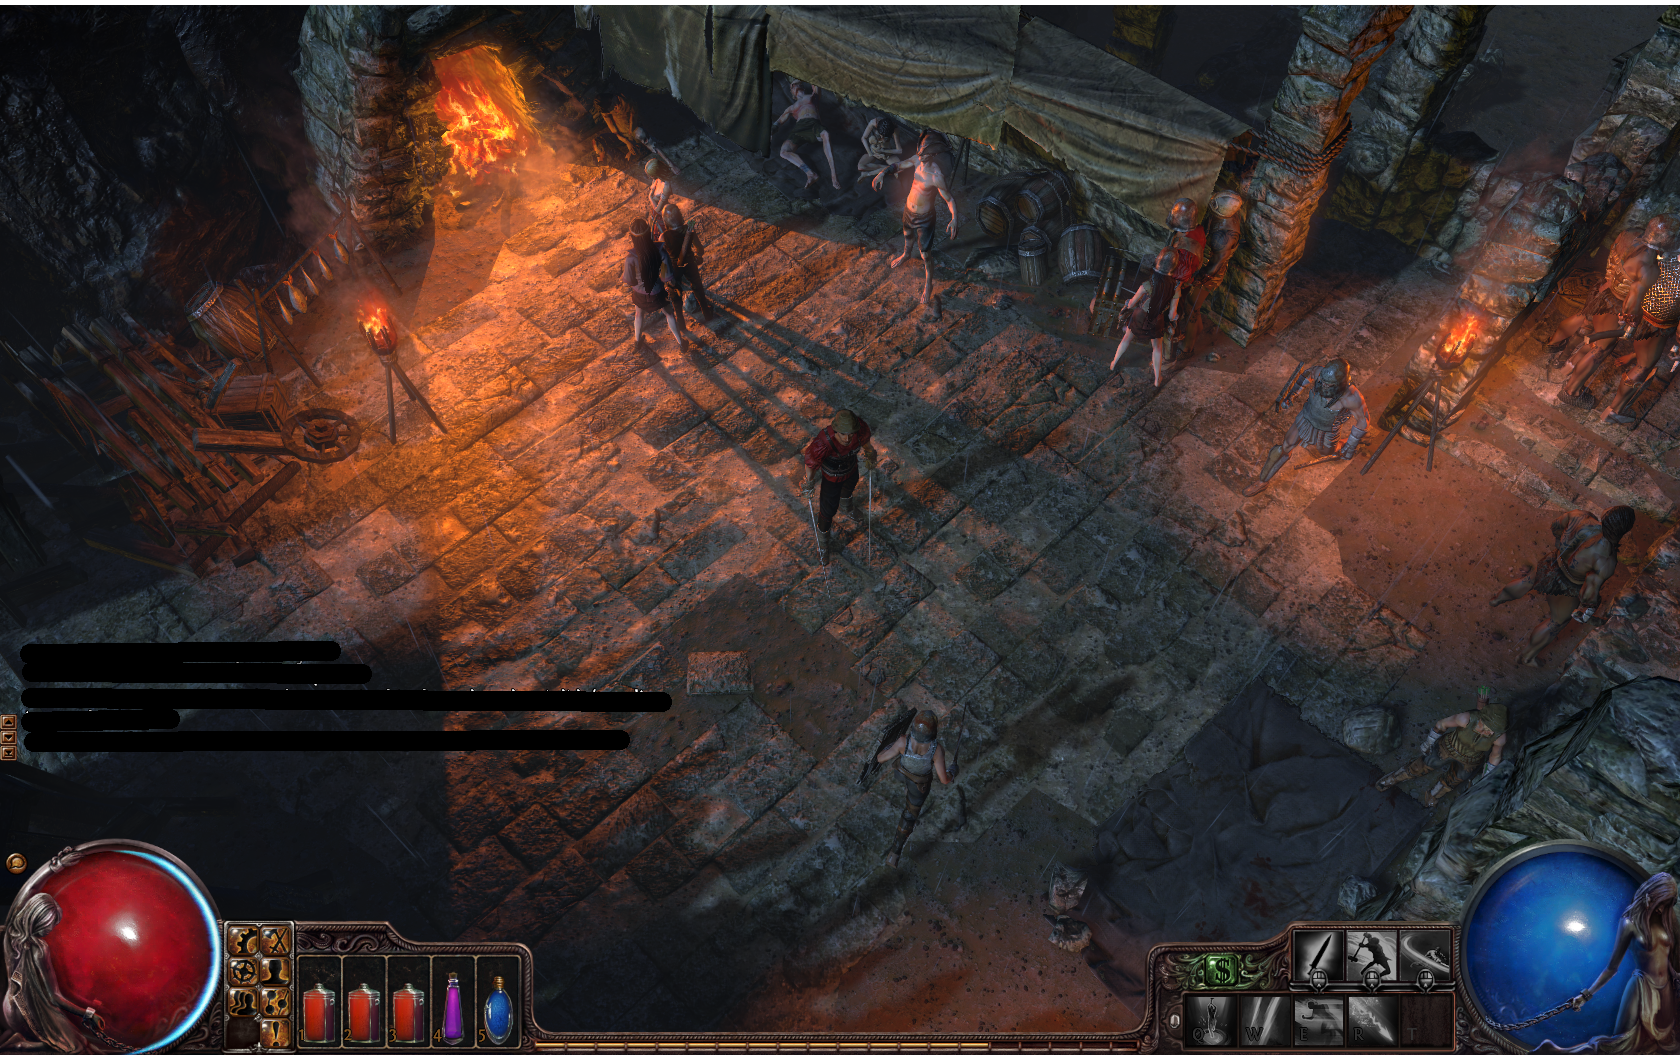 a review of the first impressions of steedmans exiles In plain english, the update adds what players expect from a new path of exile update, so expect things like new items, 12 new gems (6 vaal skills, 5 trap skills, and a new trap support gem), and a revamp to some existing skills.